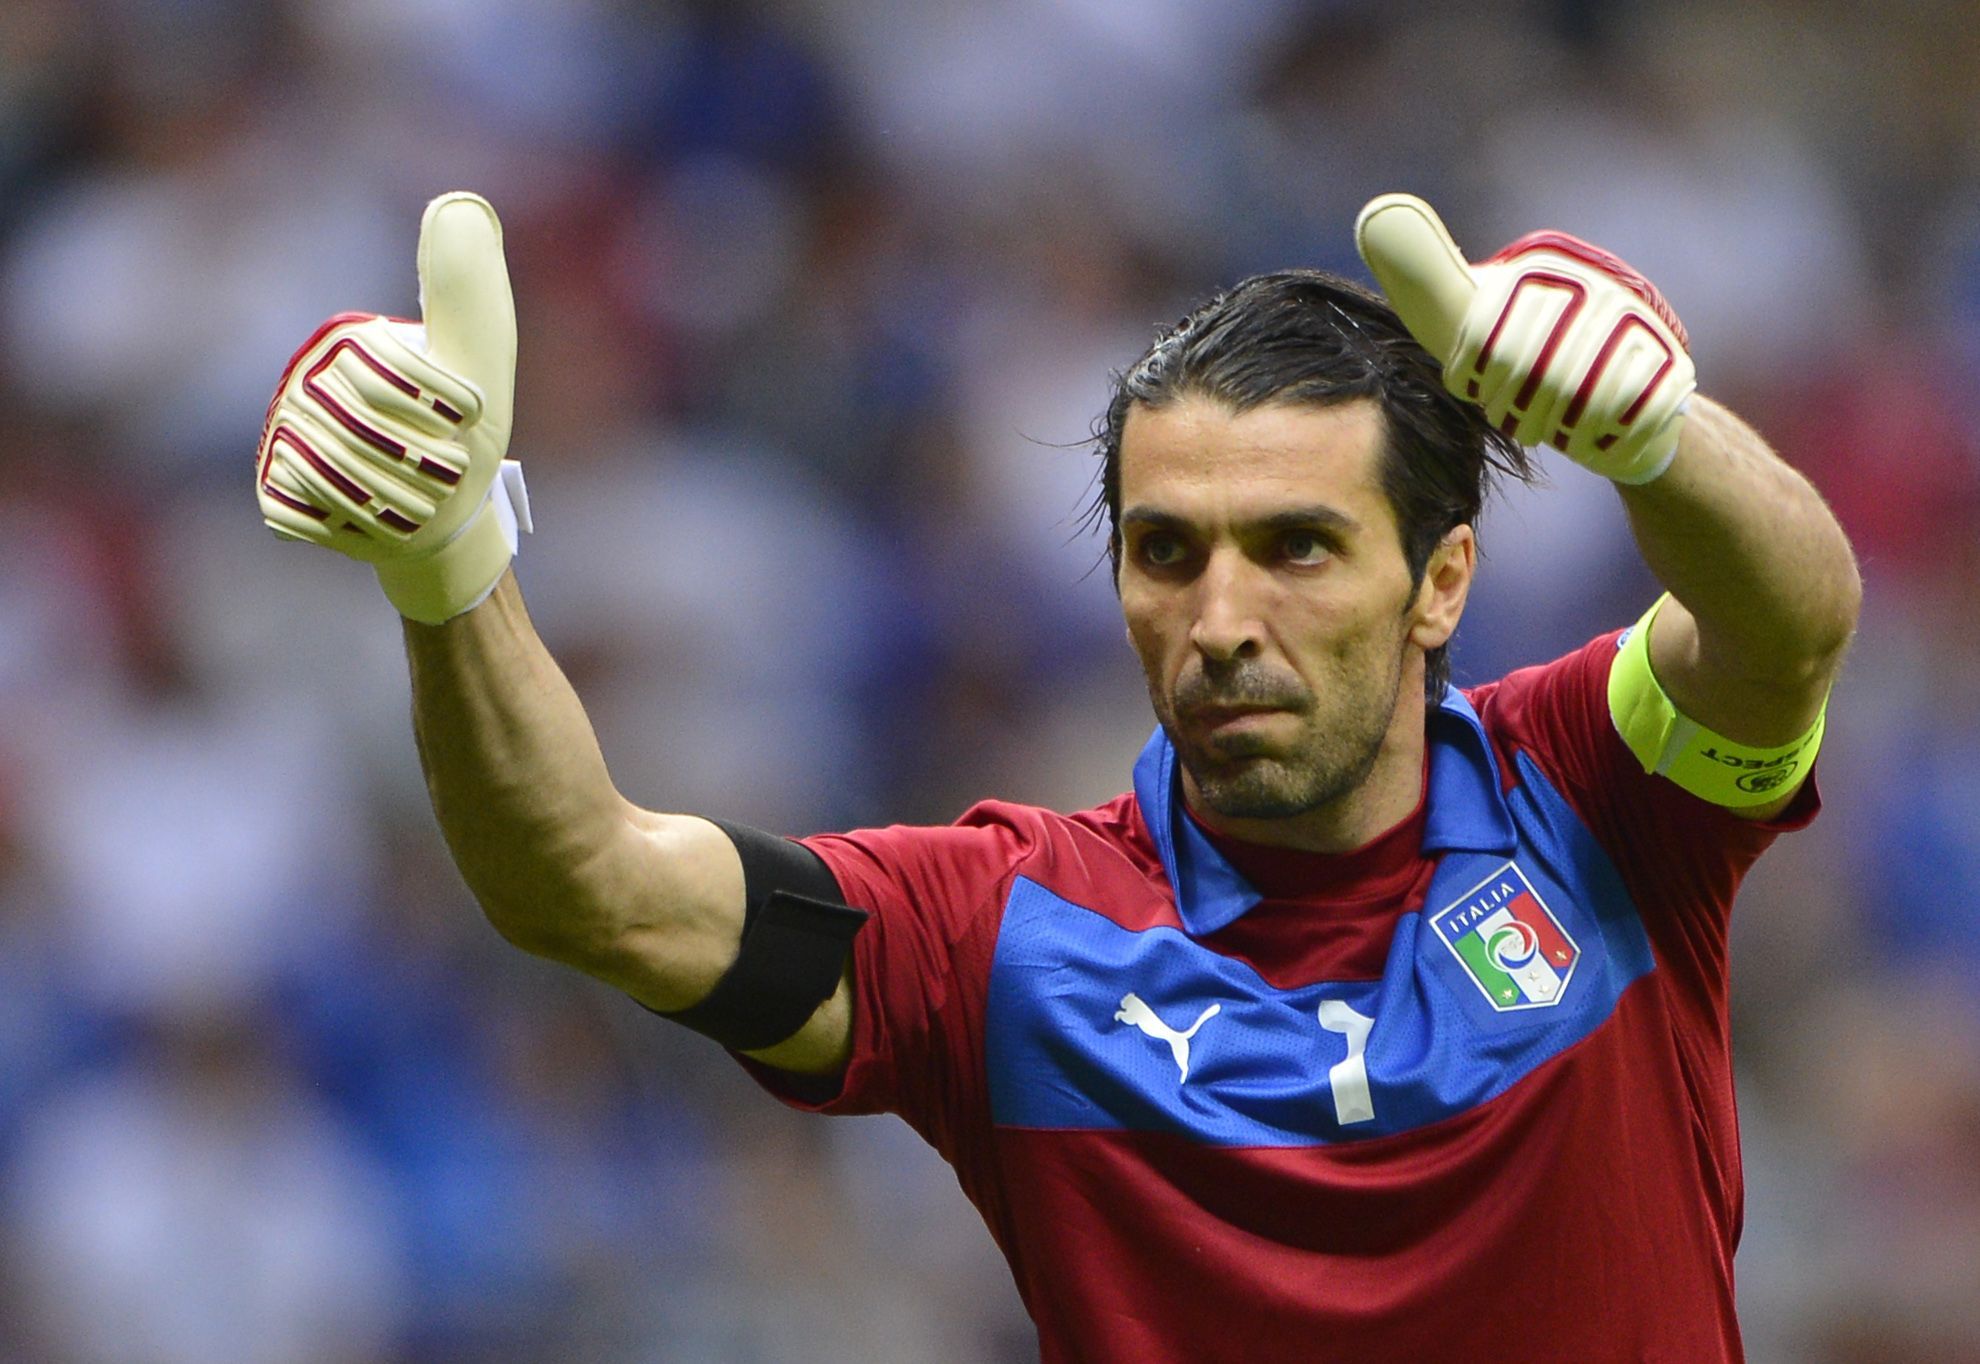 Italian goalkeeper Gianluigi Buffon gest